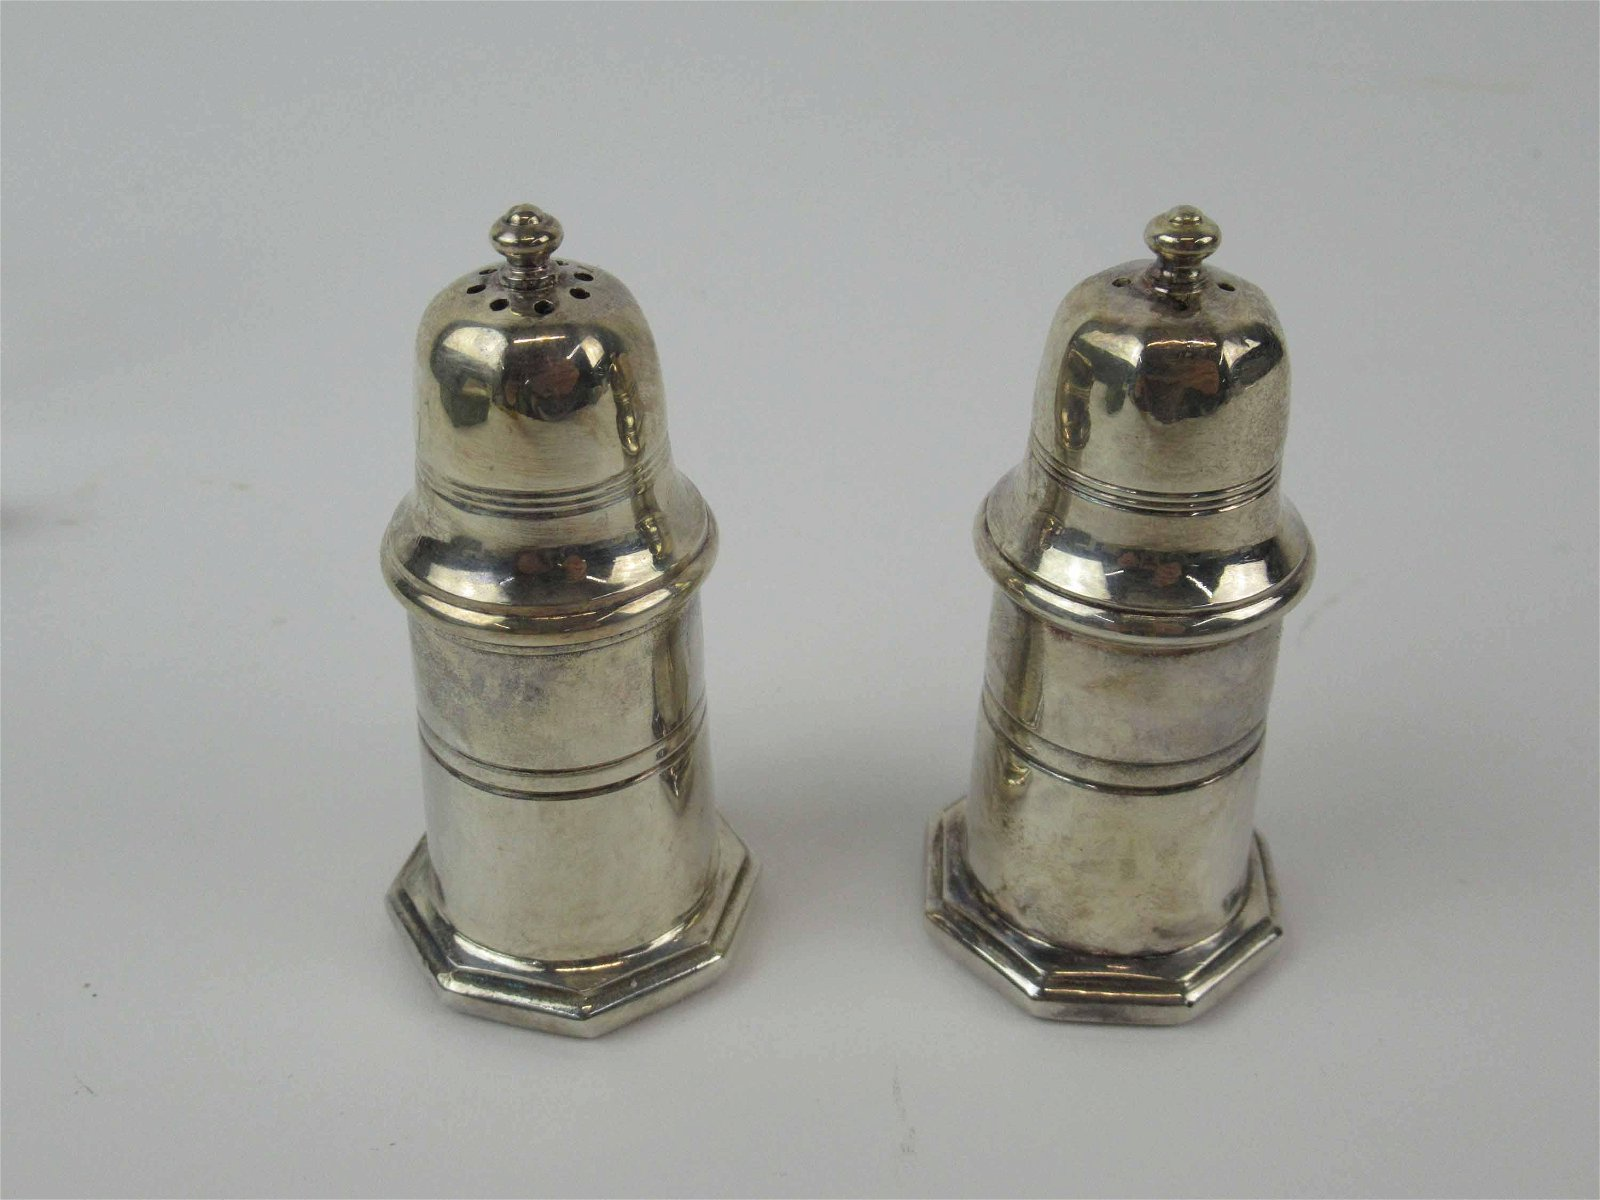 Christofle Silverplated Salt and Pepper Shakers